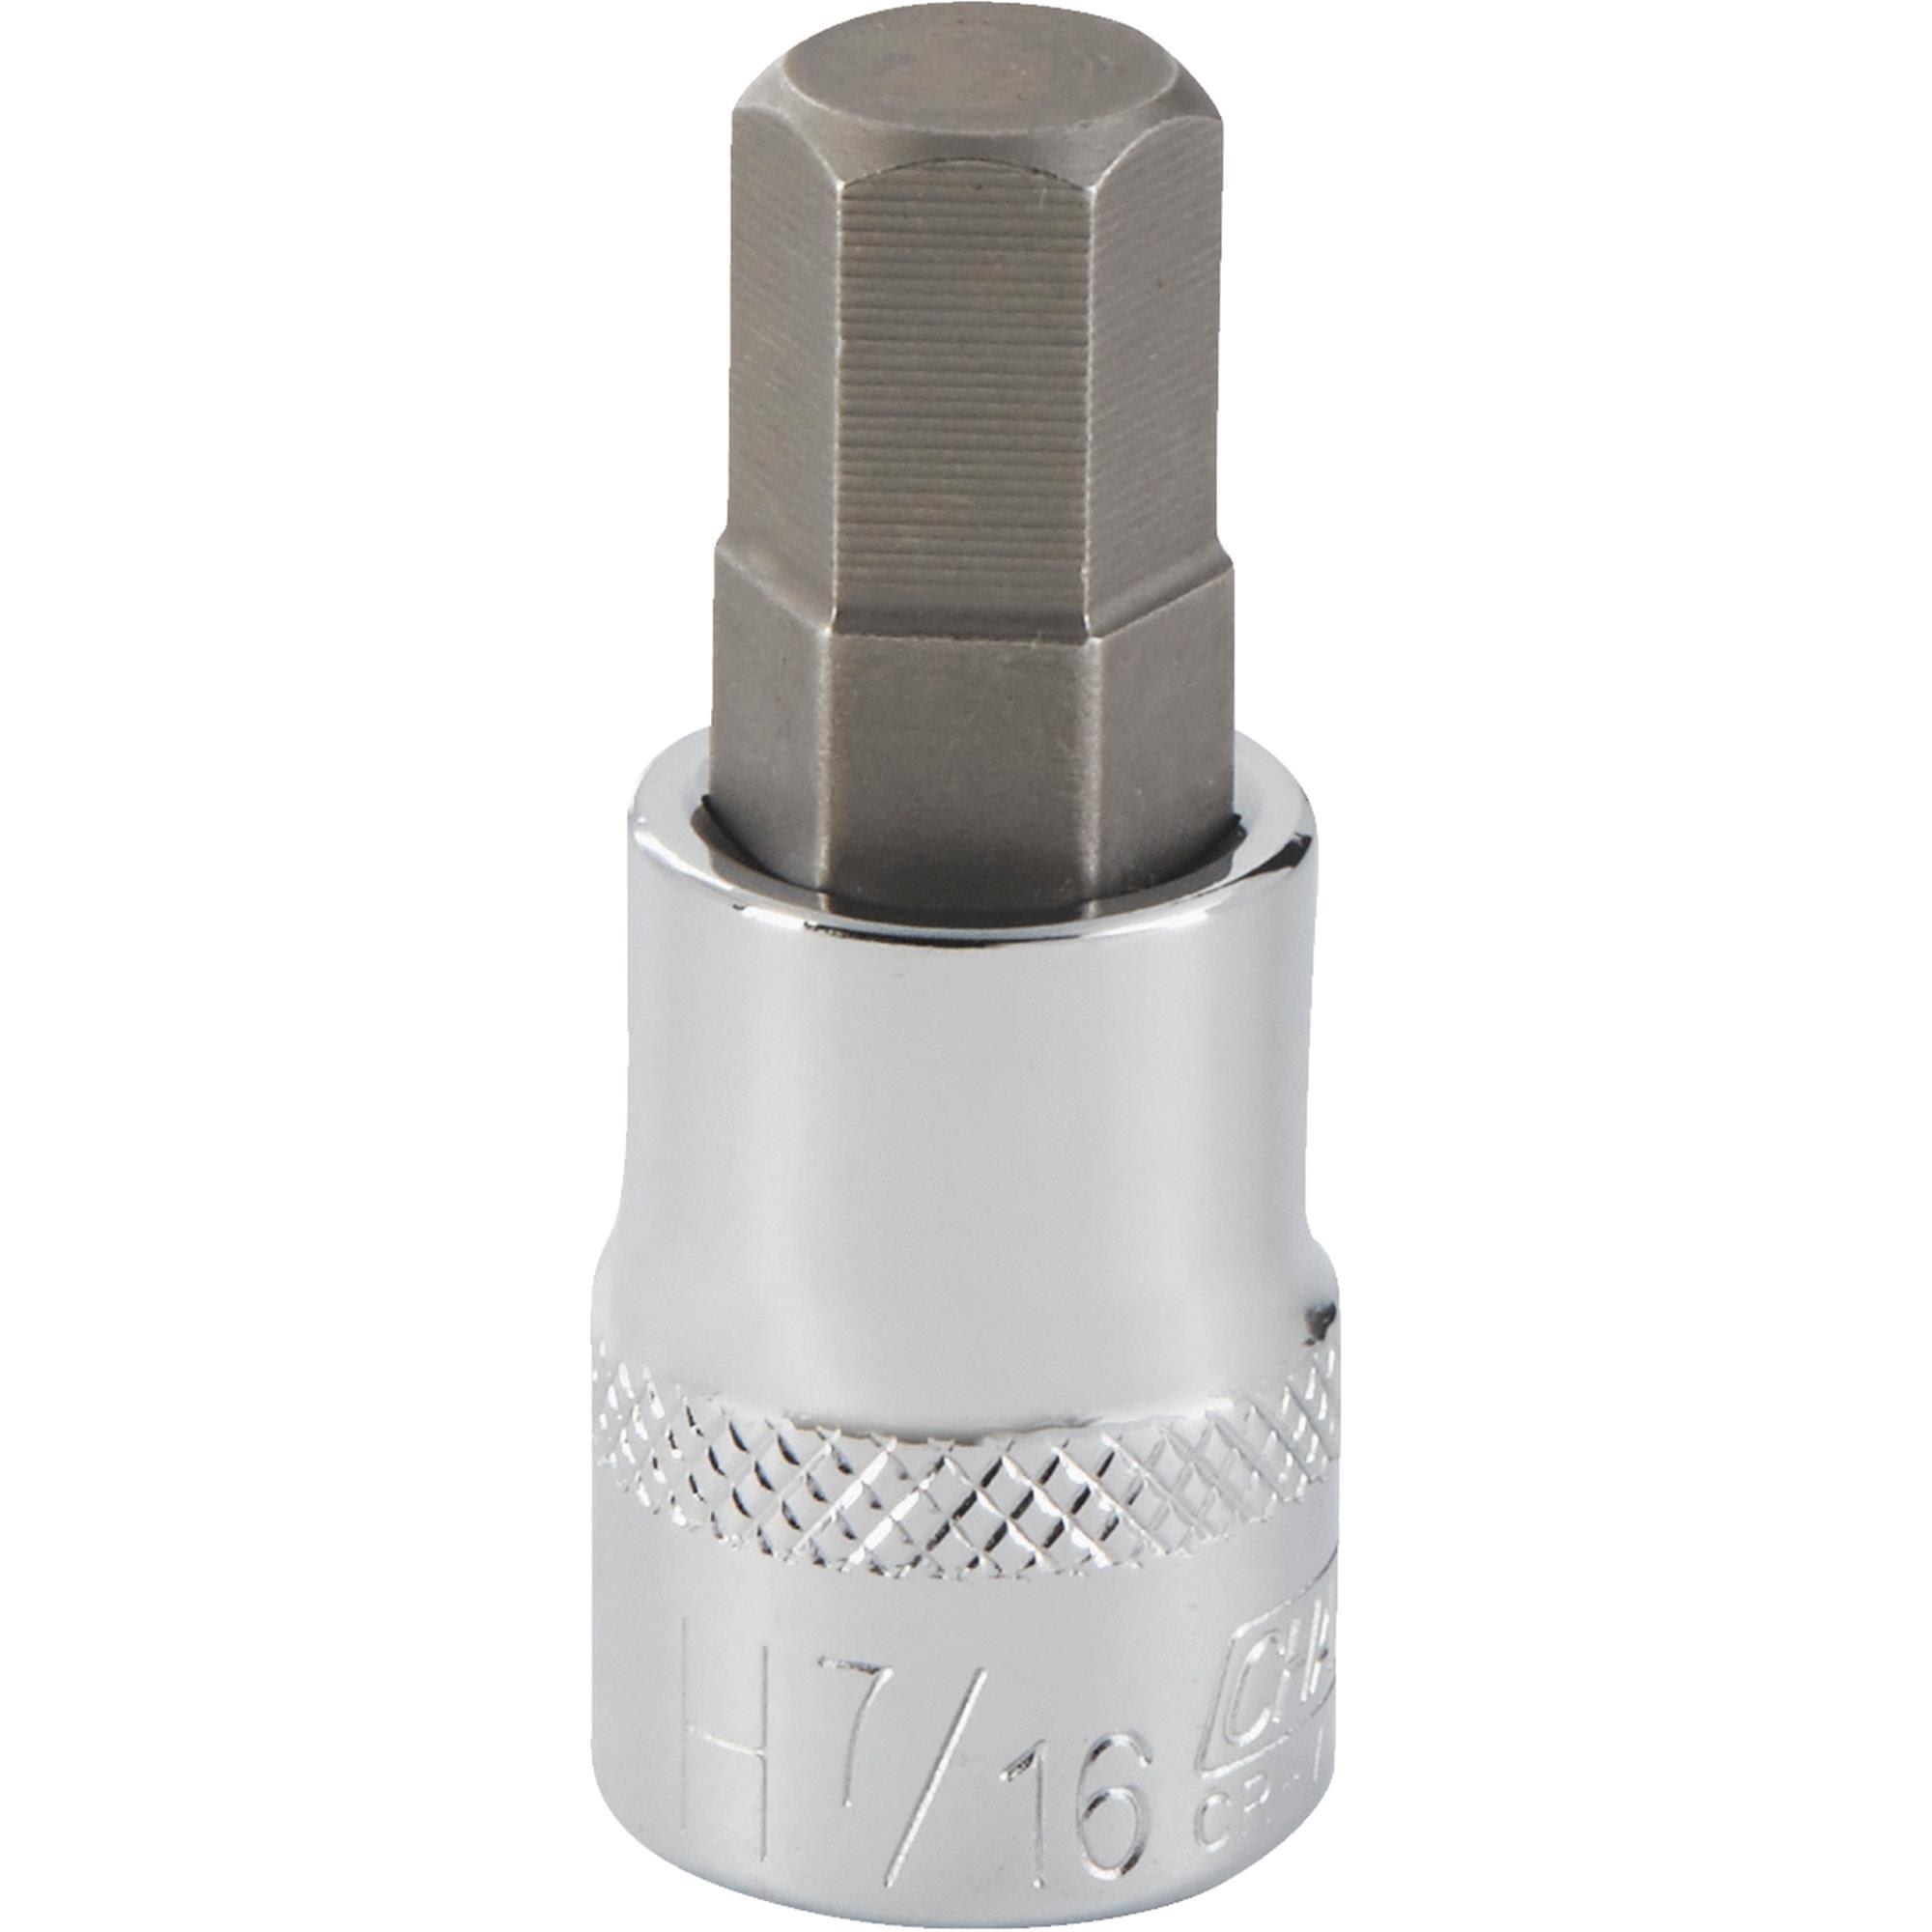 Channellock Hex Bit Socket - 7/16""